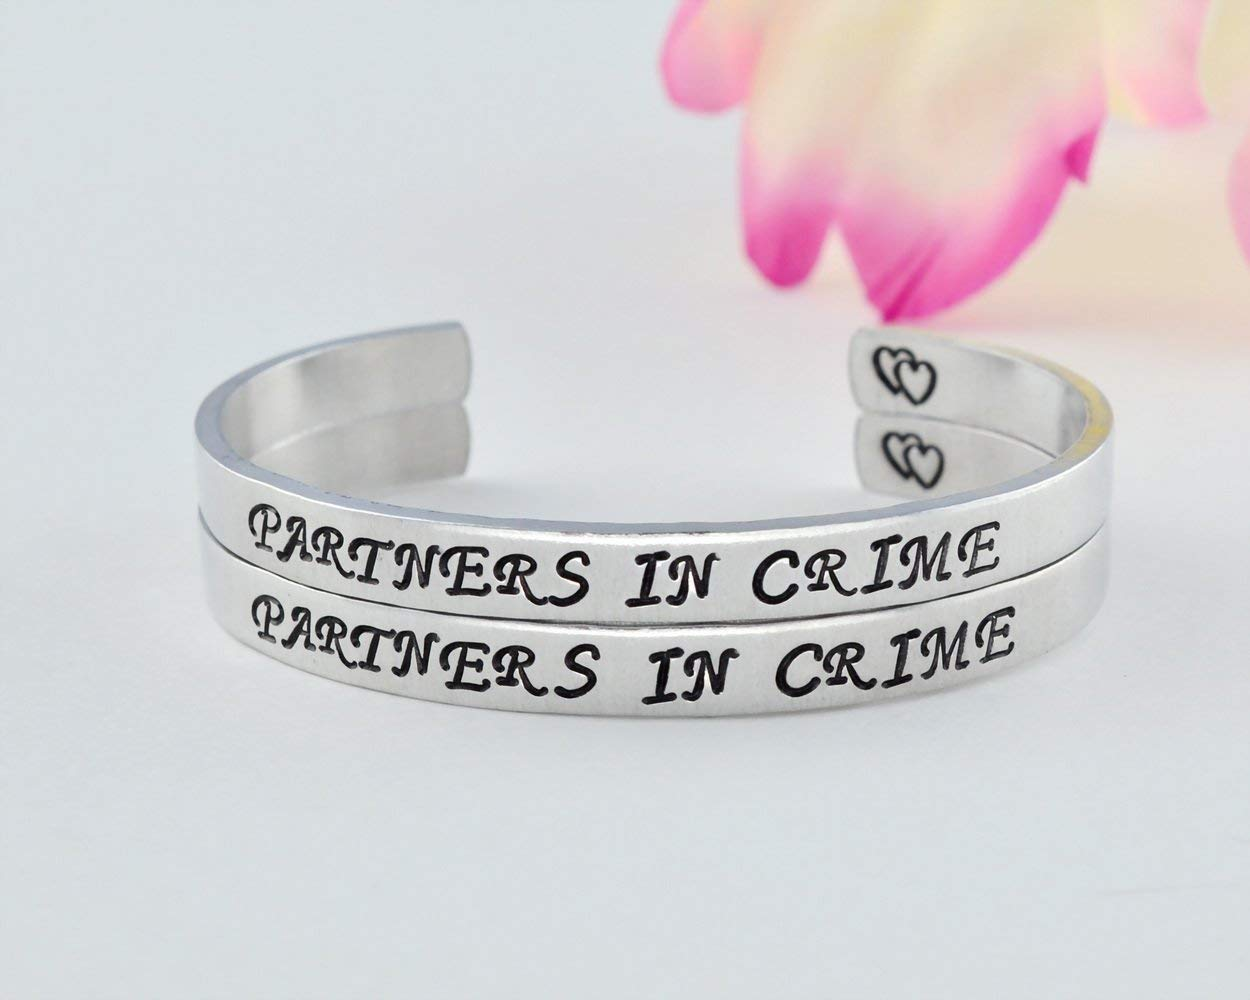 PARTNERS IN CRIME - Hand Stamped Aluminum Cuff Bracelets Set of 2, Sorority Sisters Best Friends BFF Besties Gift, Personalized Bridesmaid Gifts